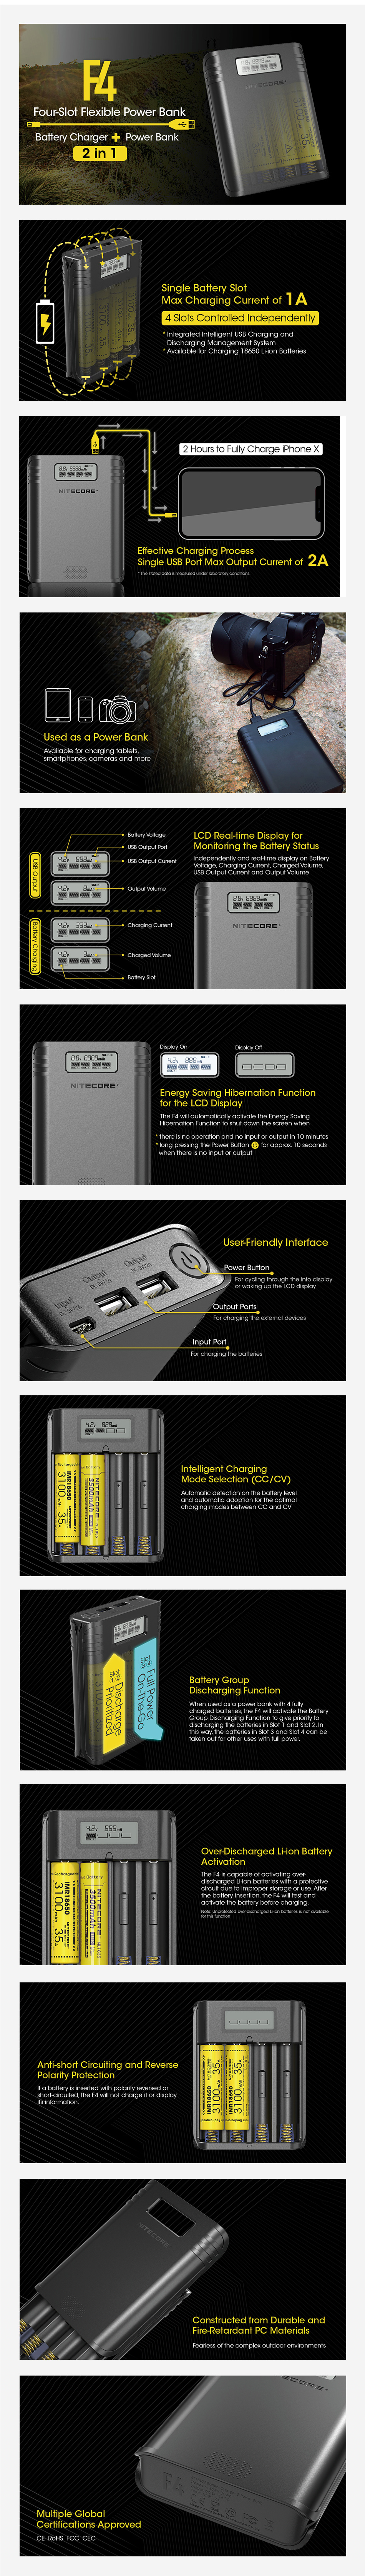 Nitecore F4 4-Slot 18650 Quick Charger with LCD Screen